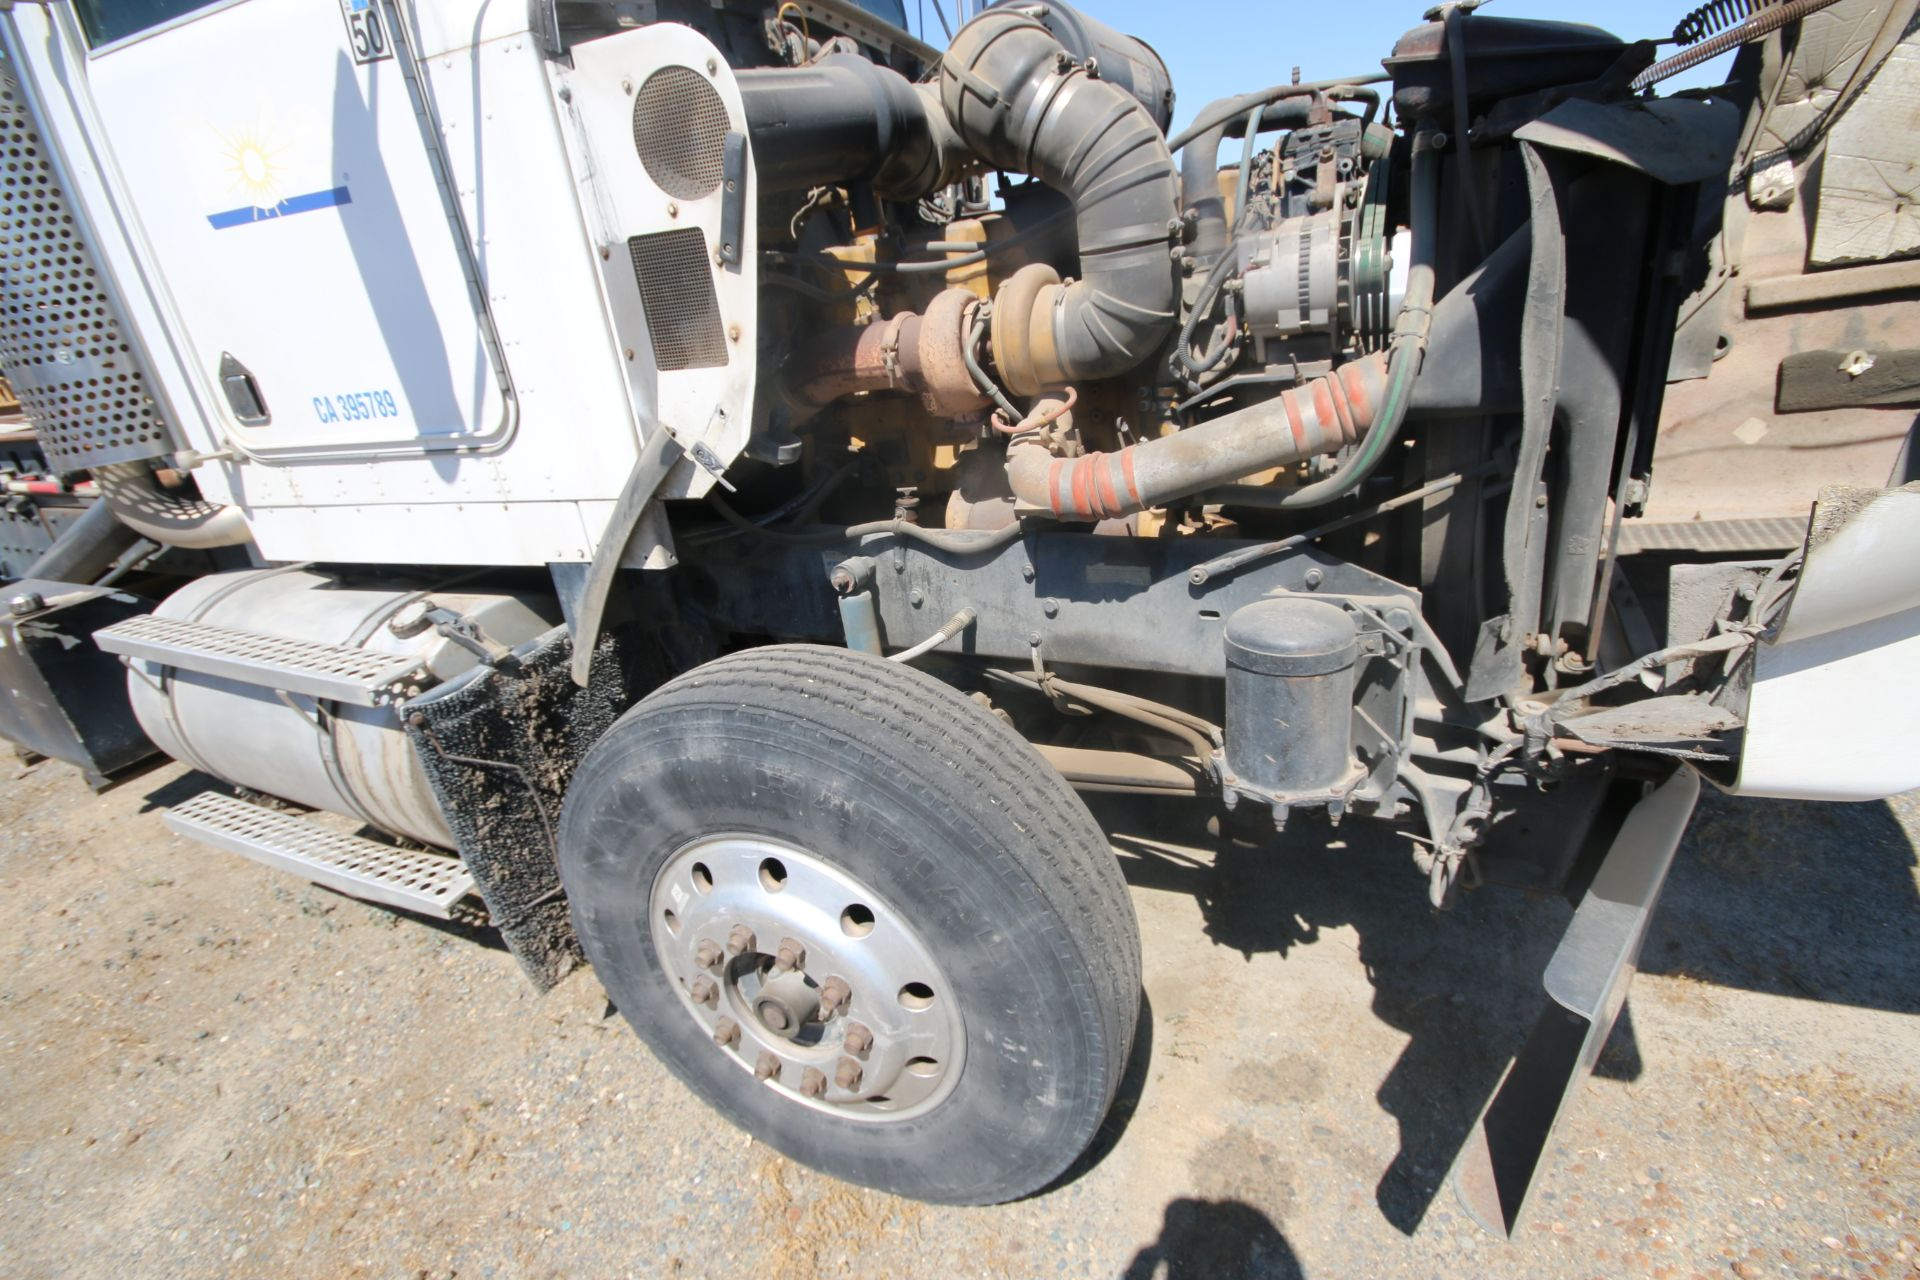 1996 Kenworth 3-Axle Roll-Off Straight Truck, VIN #: 1XKDDB9XOTS687107, with 24,722 Miles, License - Image 23 of 30